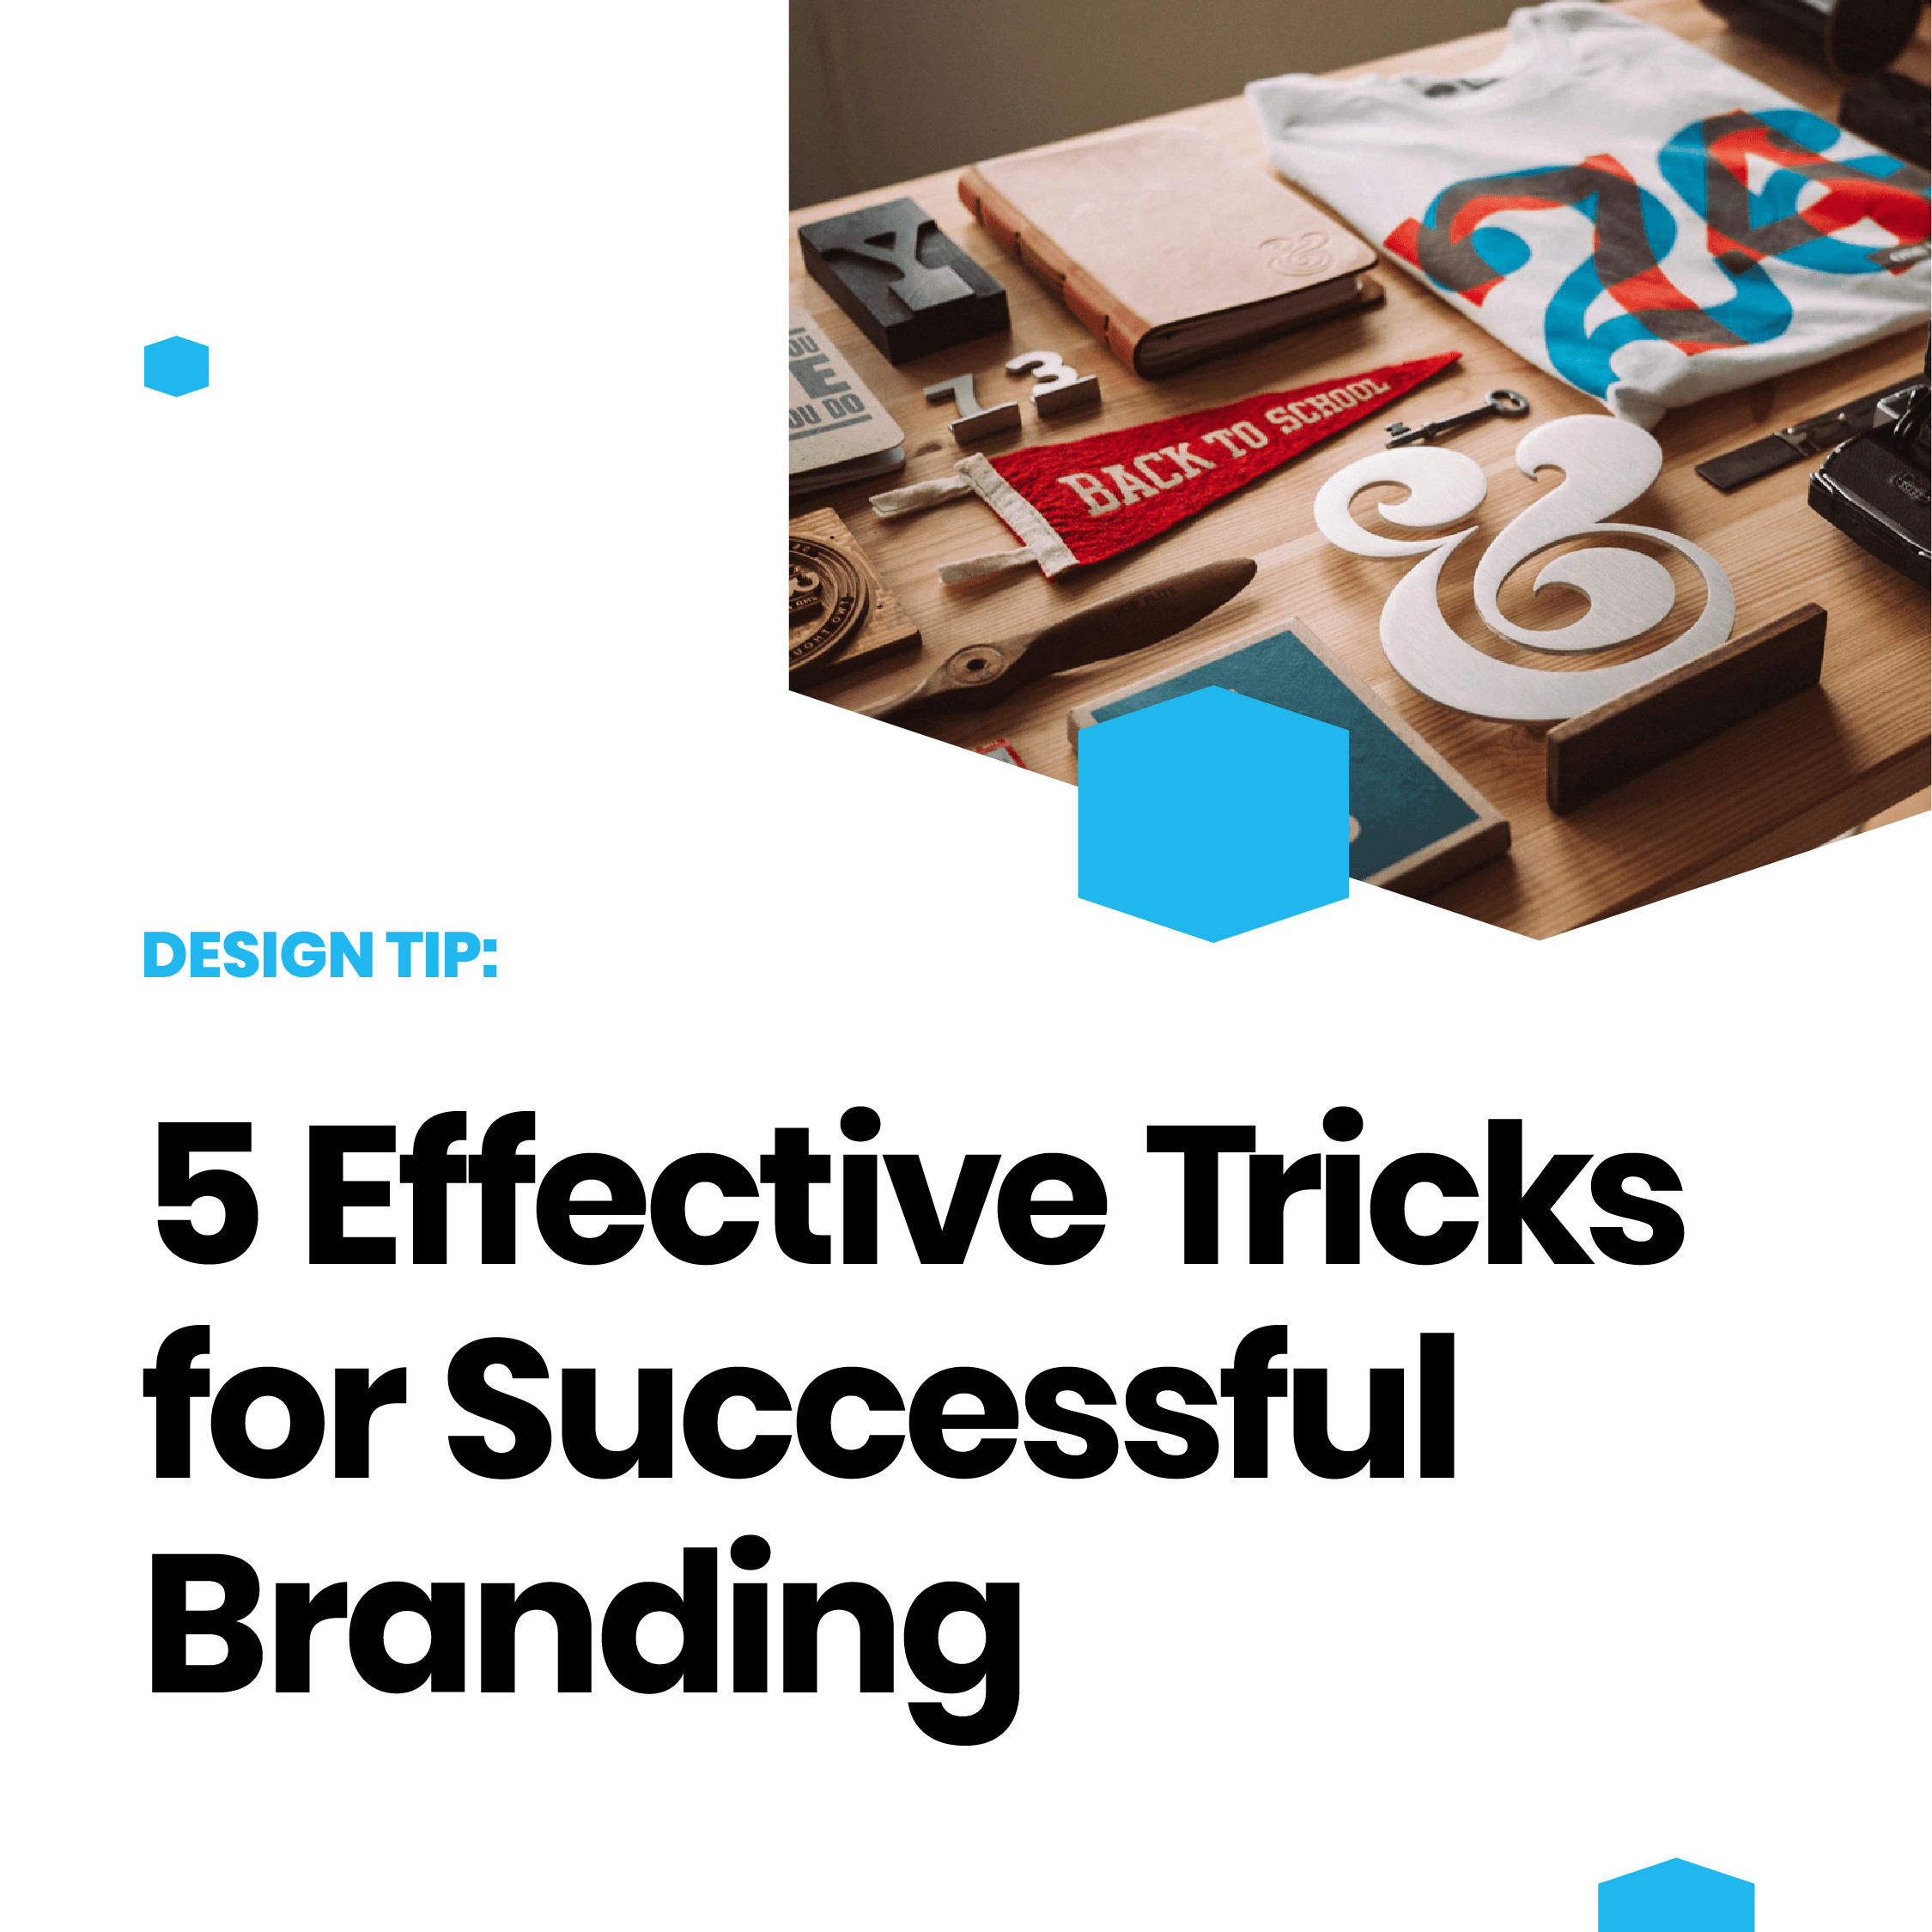 5 Effective Tricks for Successful Branding